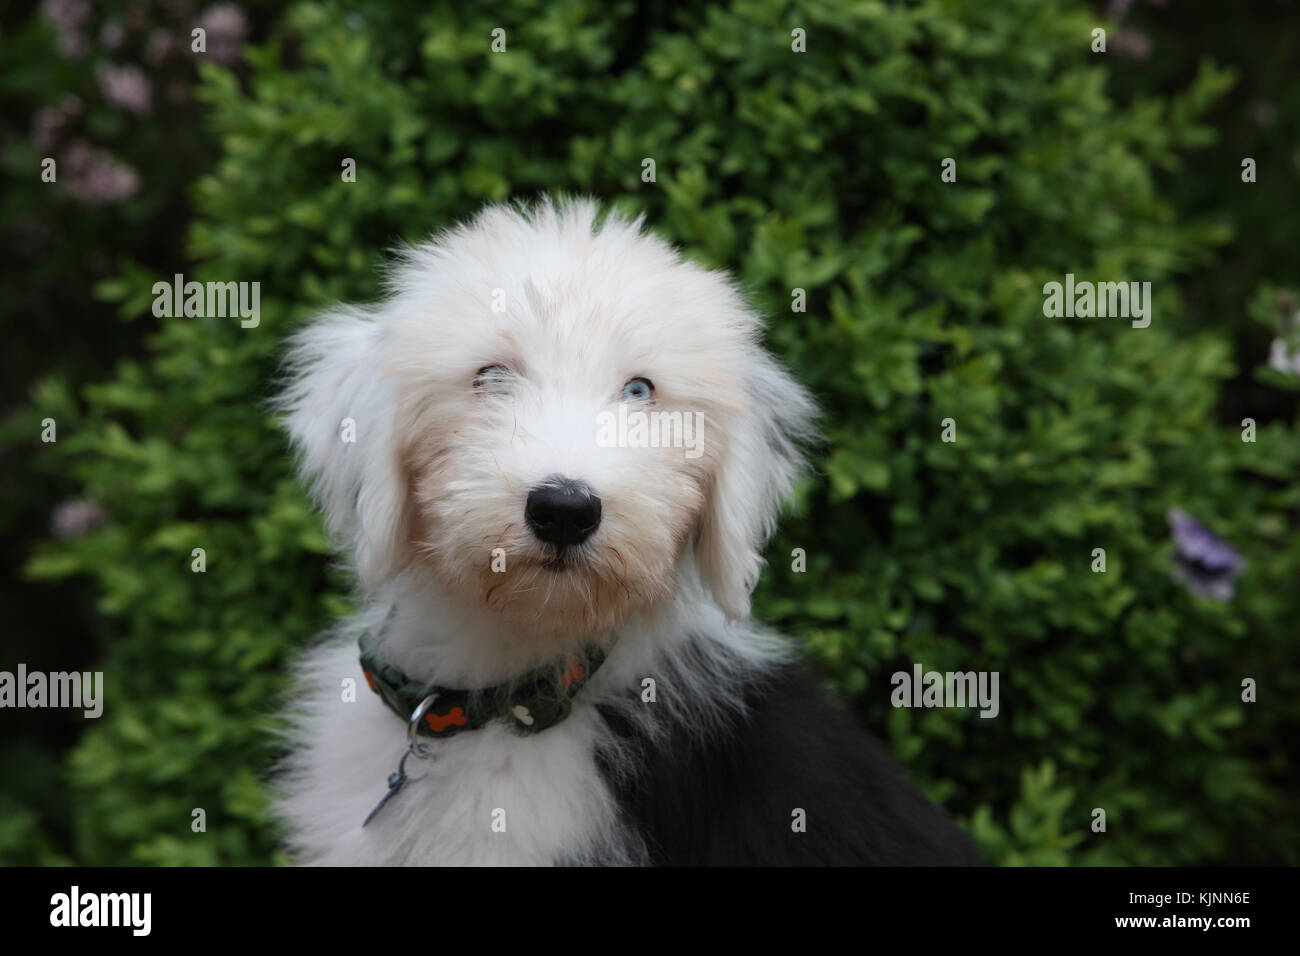 Old English Sheepdog Puppy Stock Photos & Old English